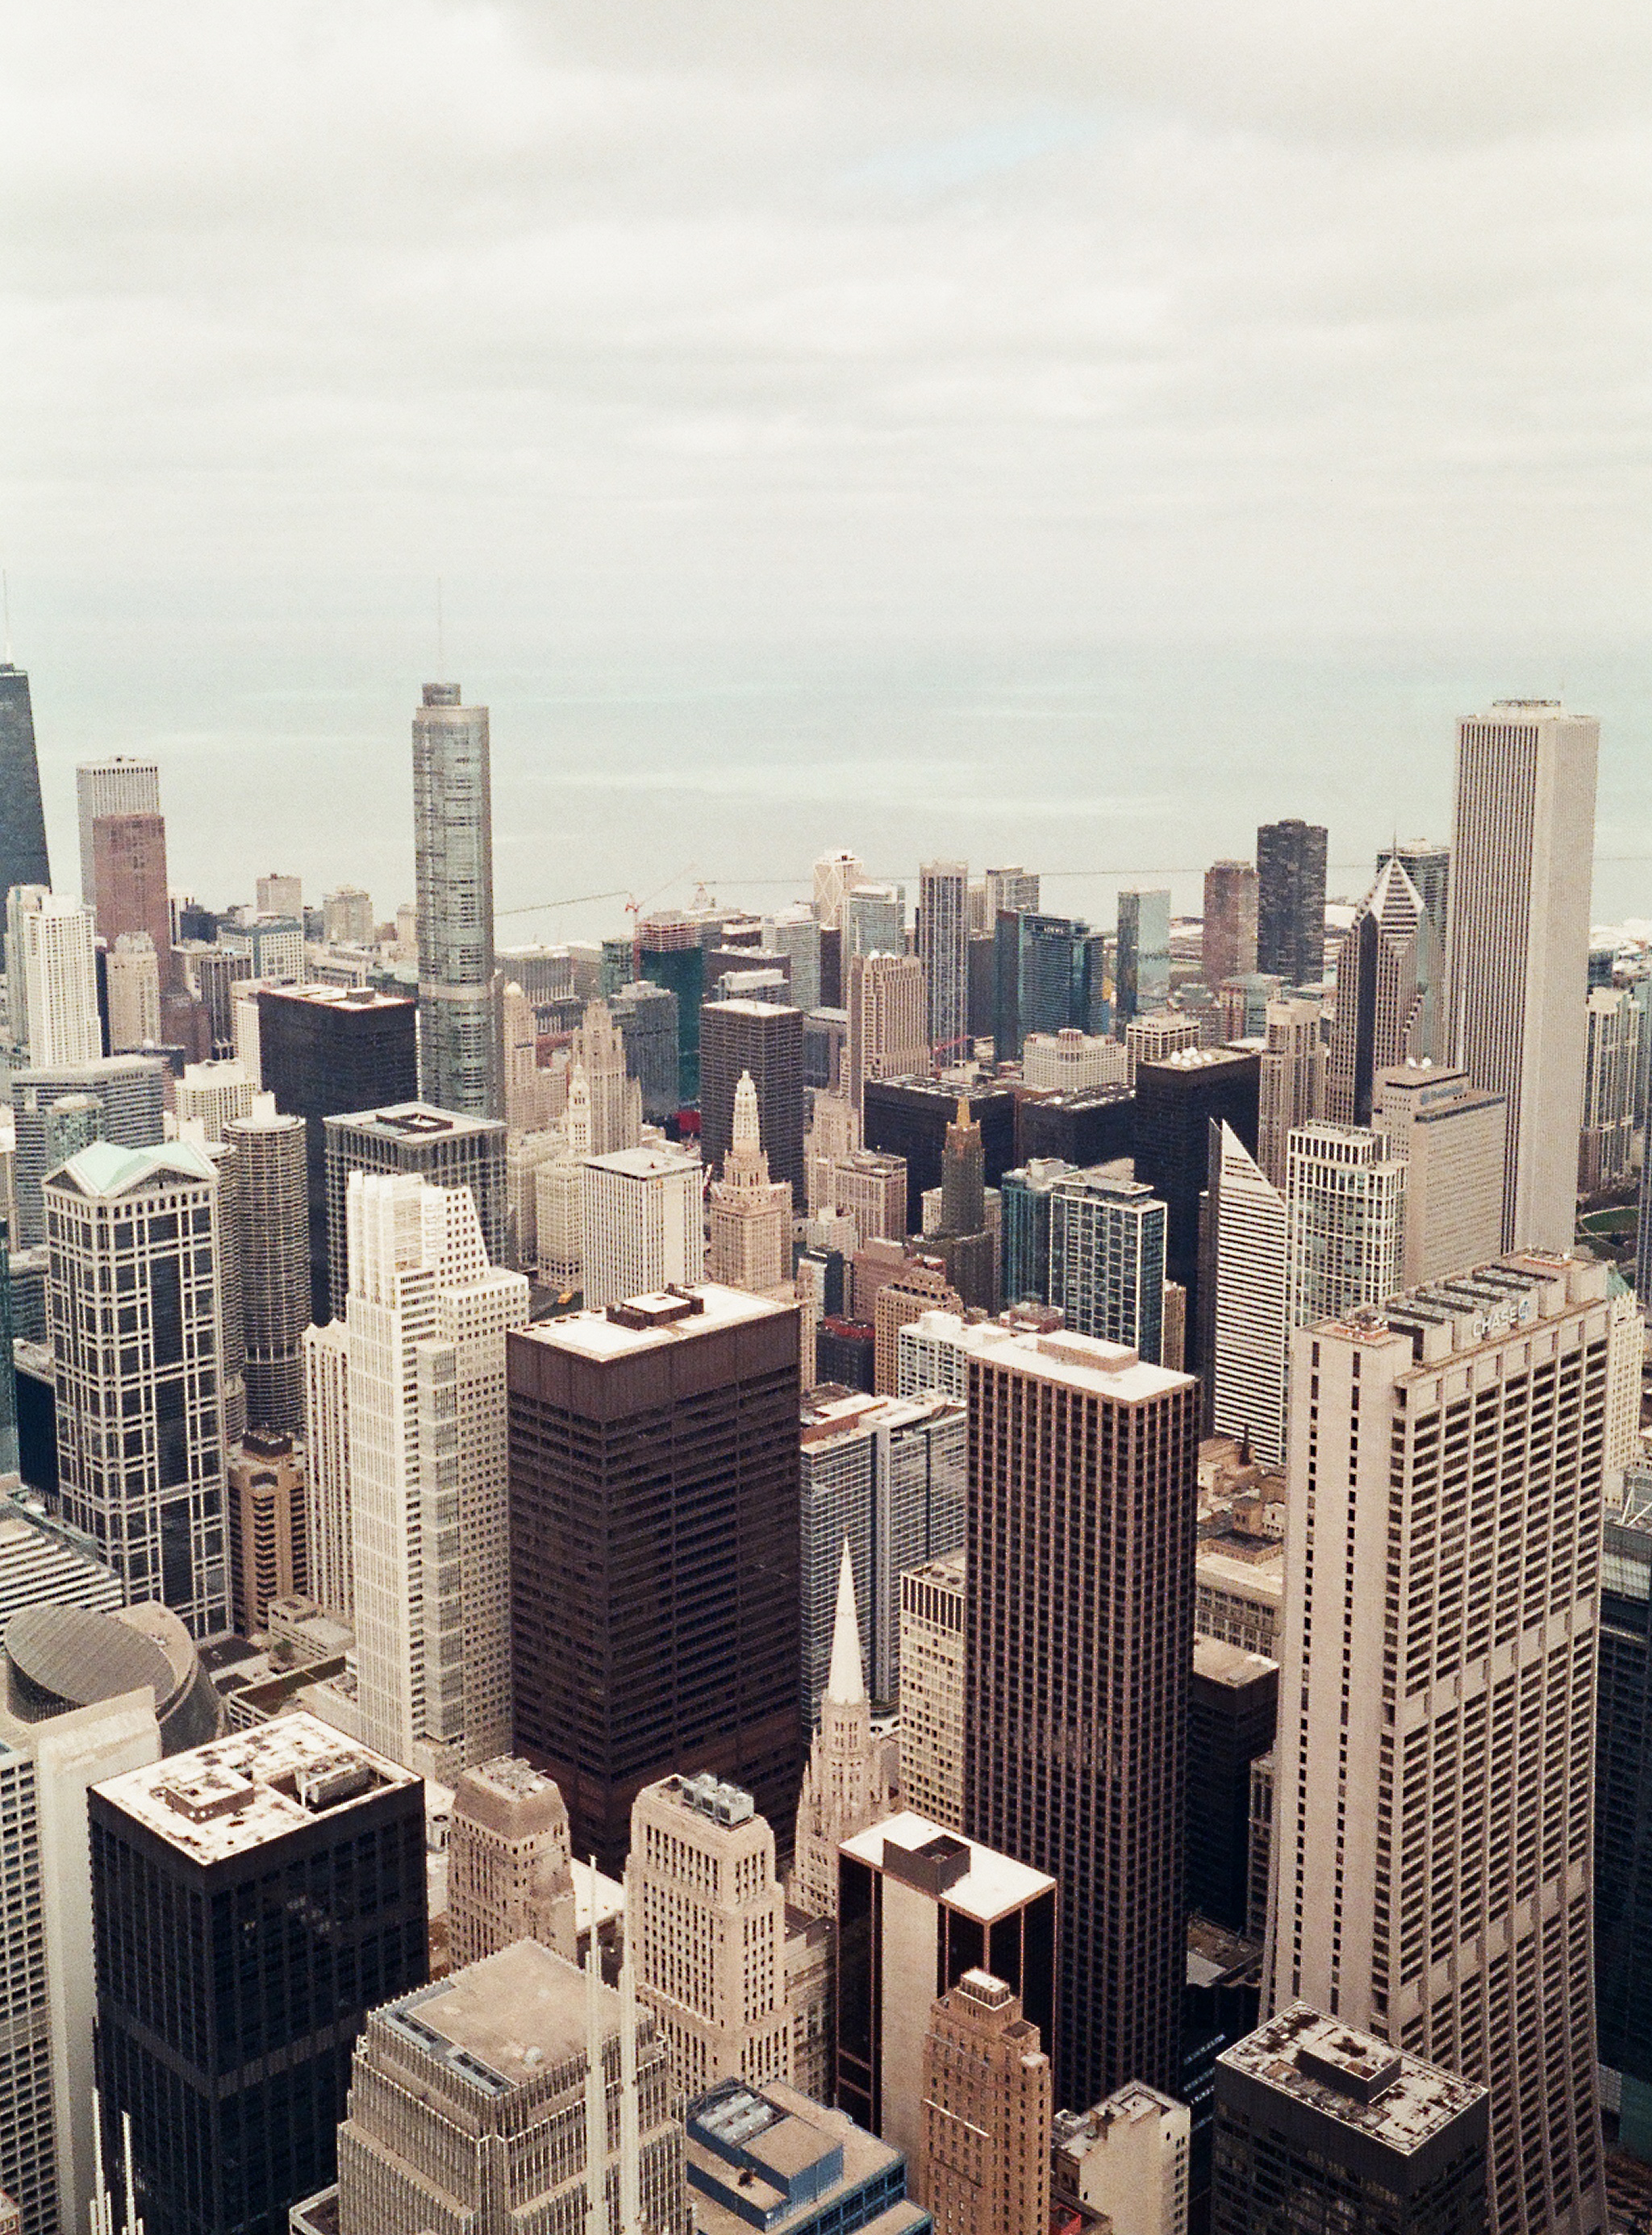 Chicago, IL